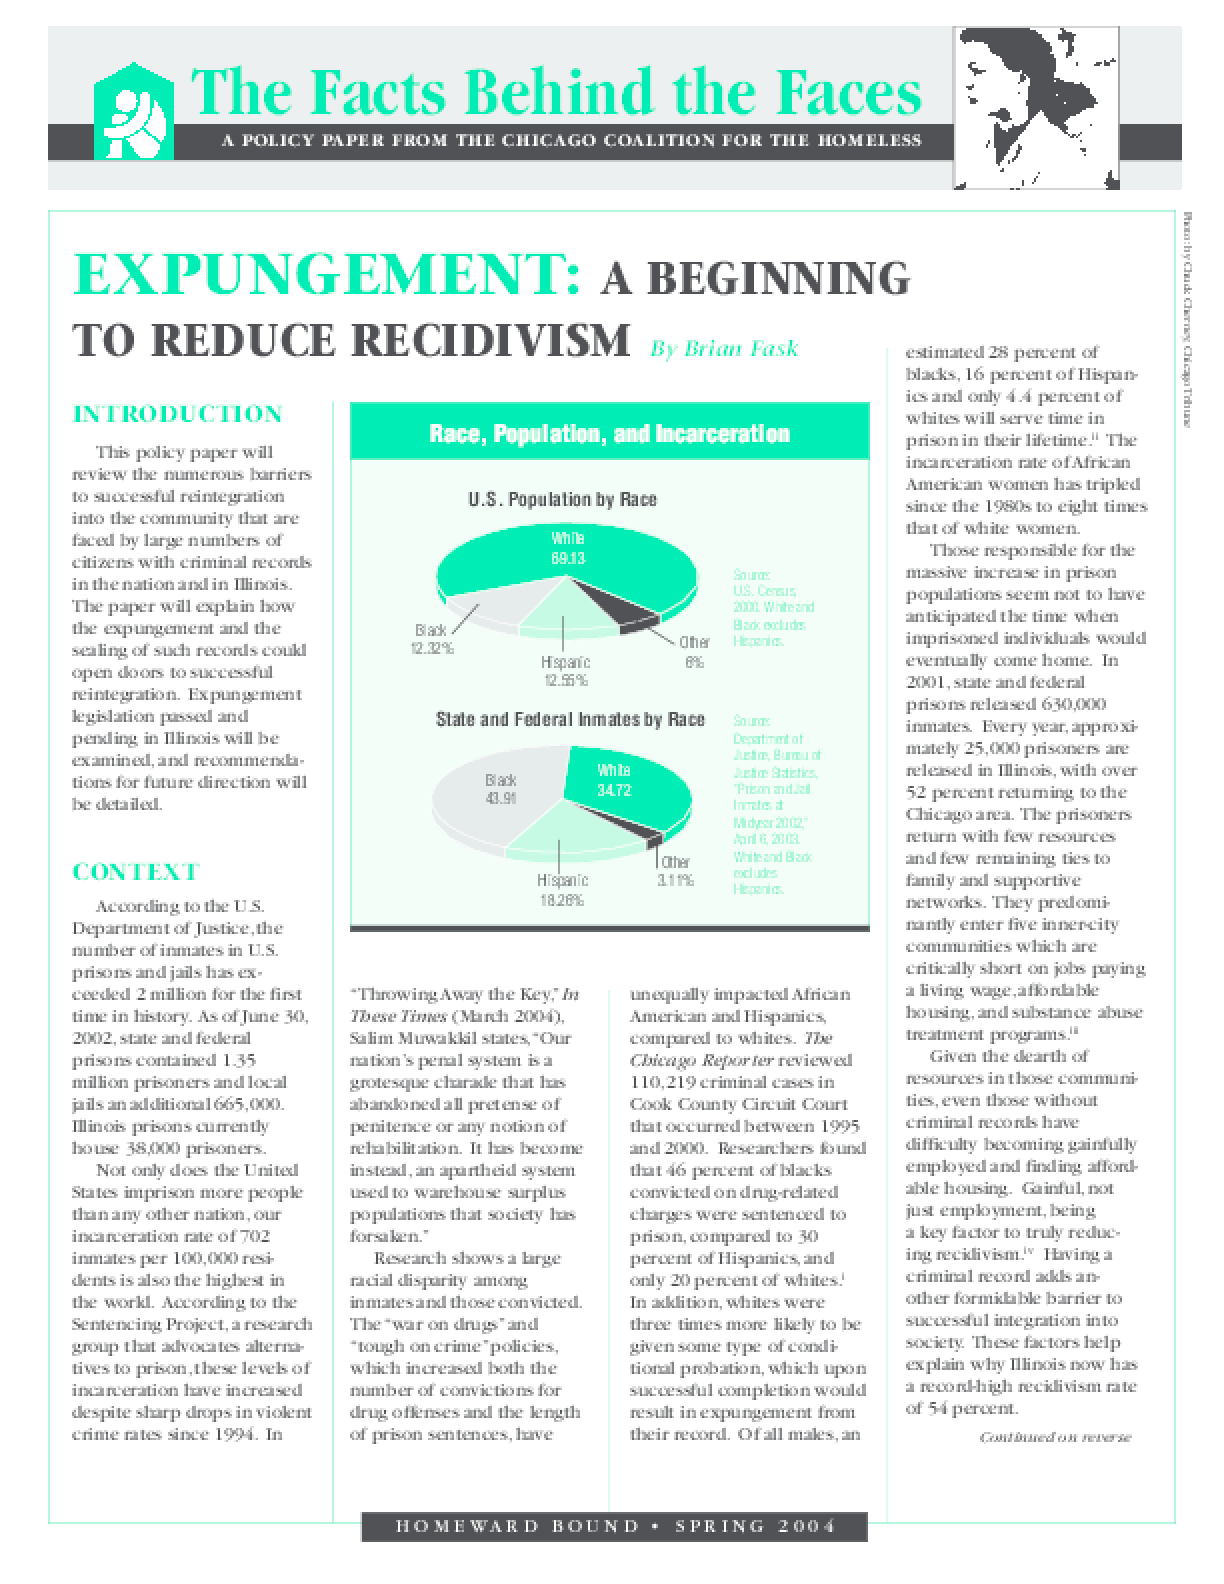 Expungement: A Beginning to Reduce Recidivism